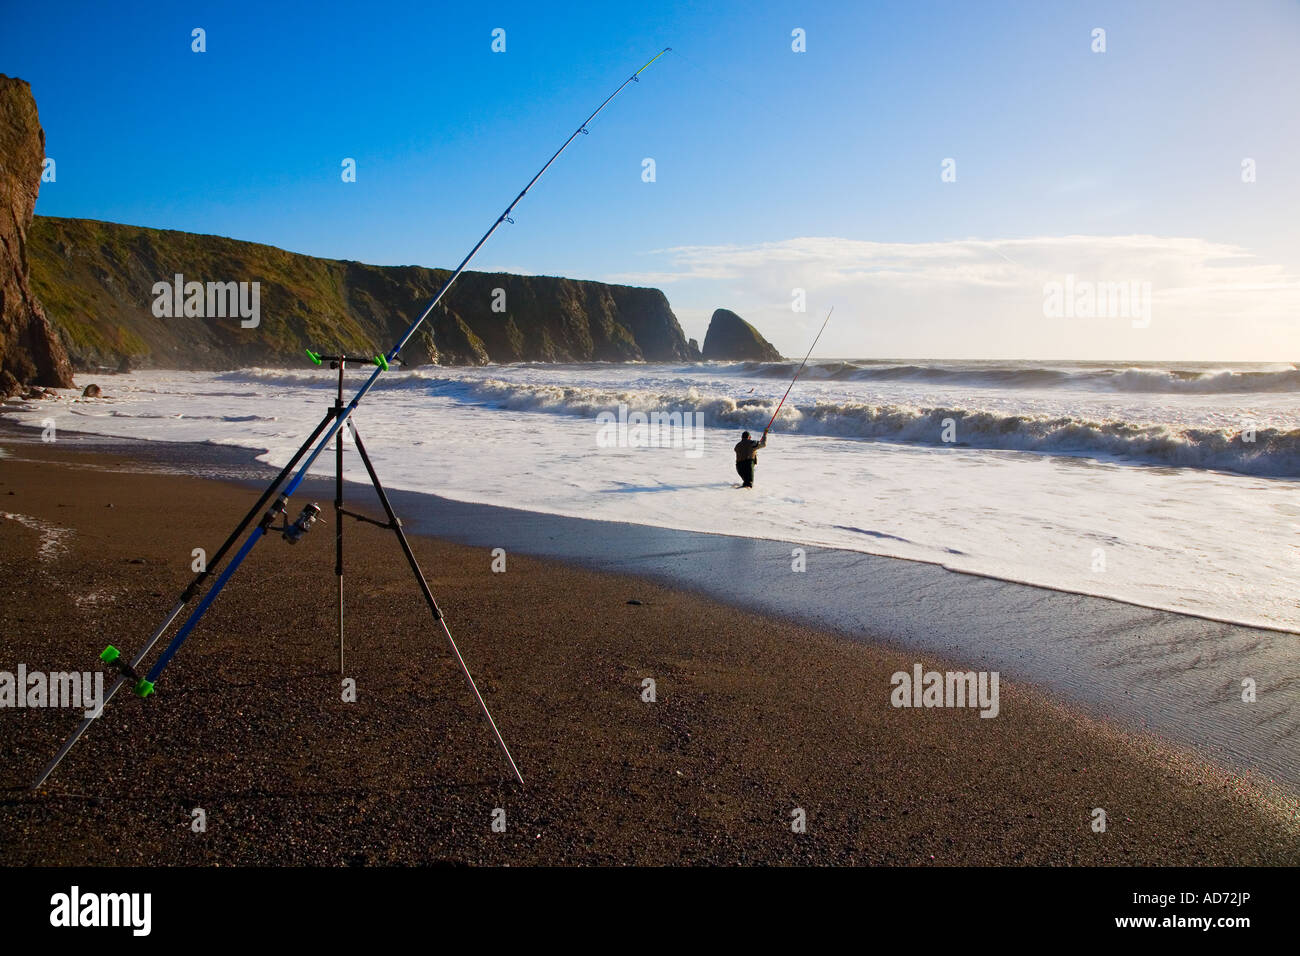 Sea Angling in Winter at Ballydowane Beach, Near Bunmahon, The Copper Coast, County Waterford, Ireland - Stock Image